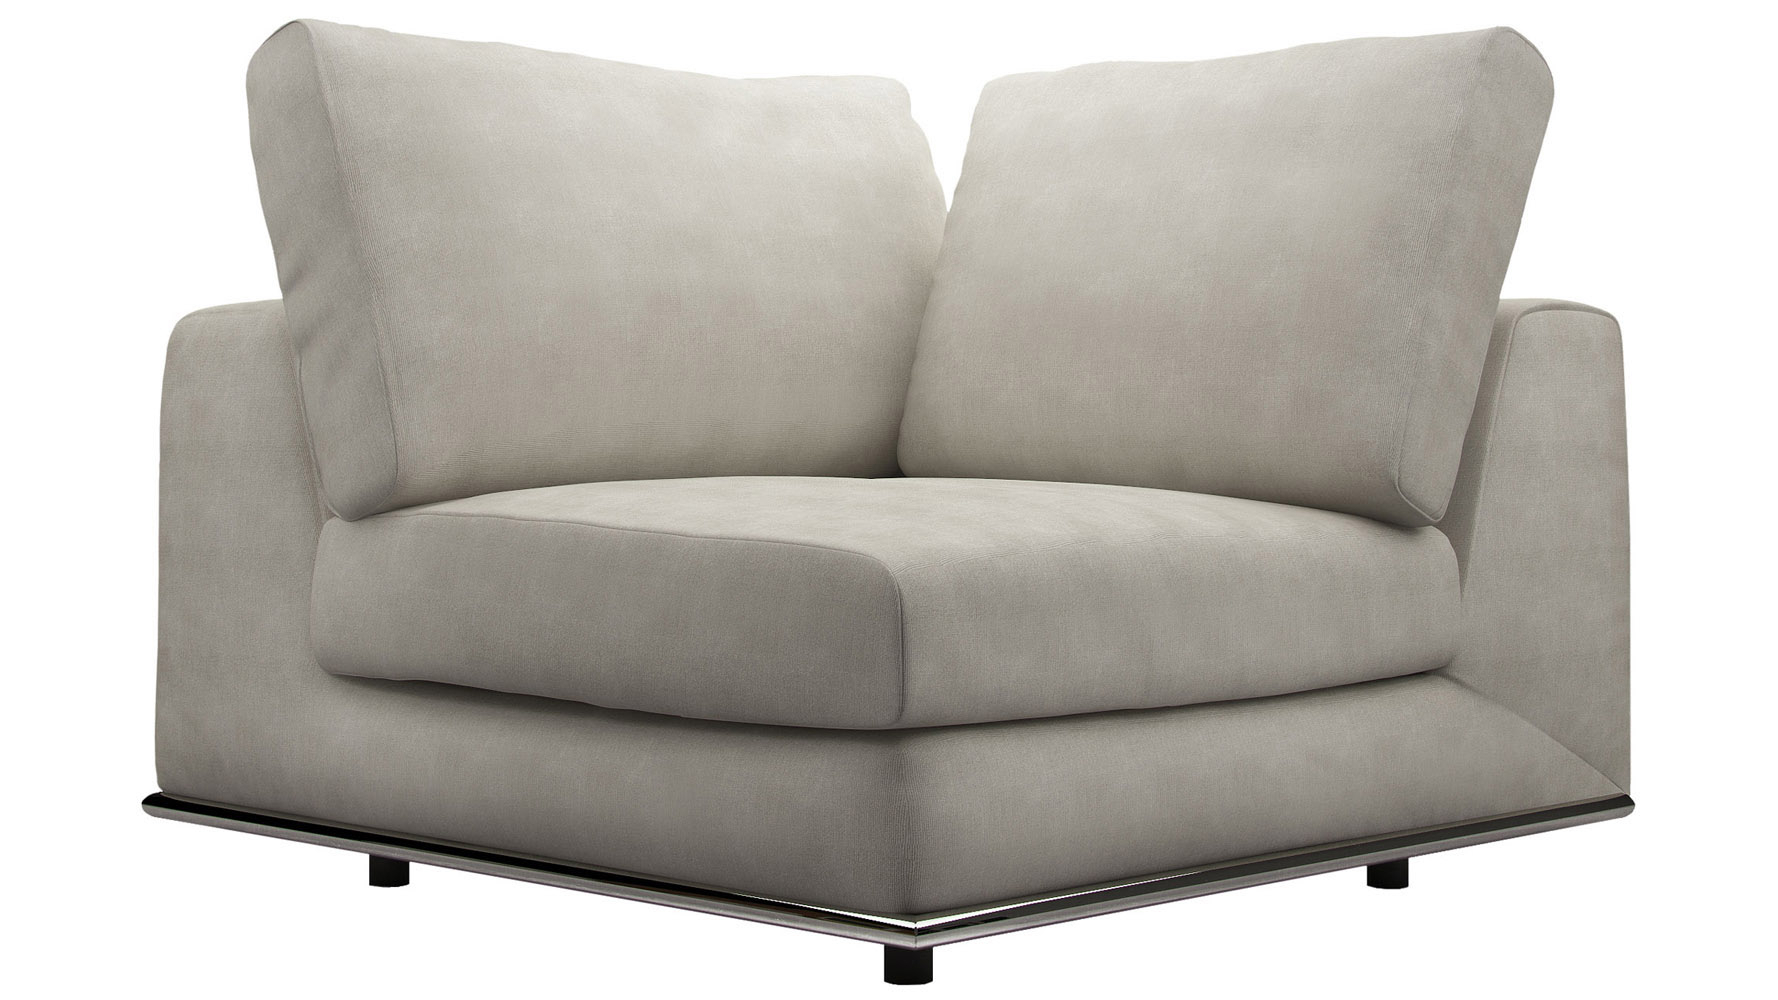 Modern Persis Corner Sofa Chair | Zuri Furniture With Regard To Lucy Grey Sofa Chairs (Image 20 of 25)